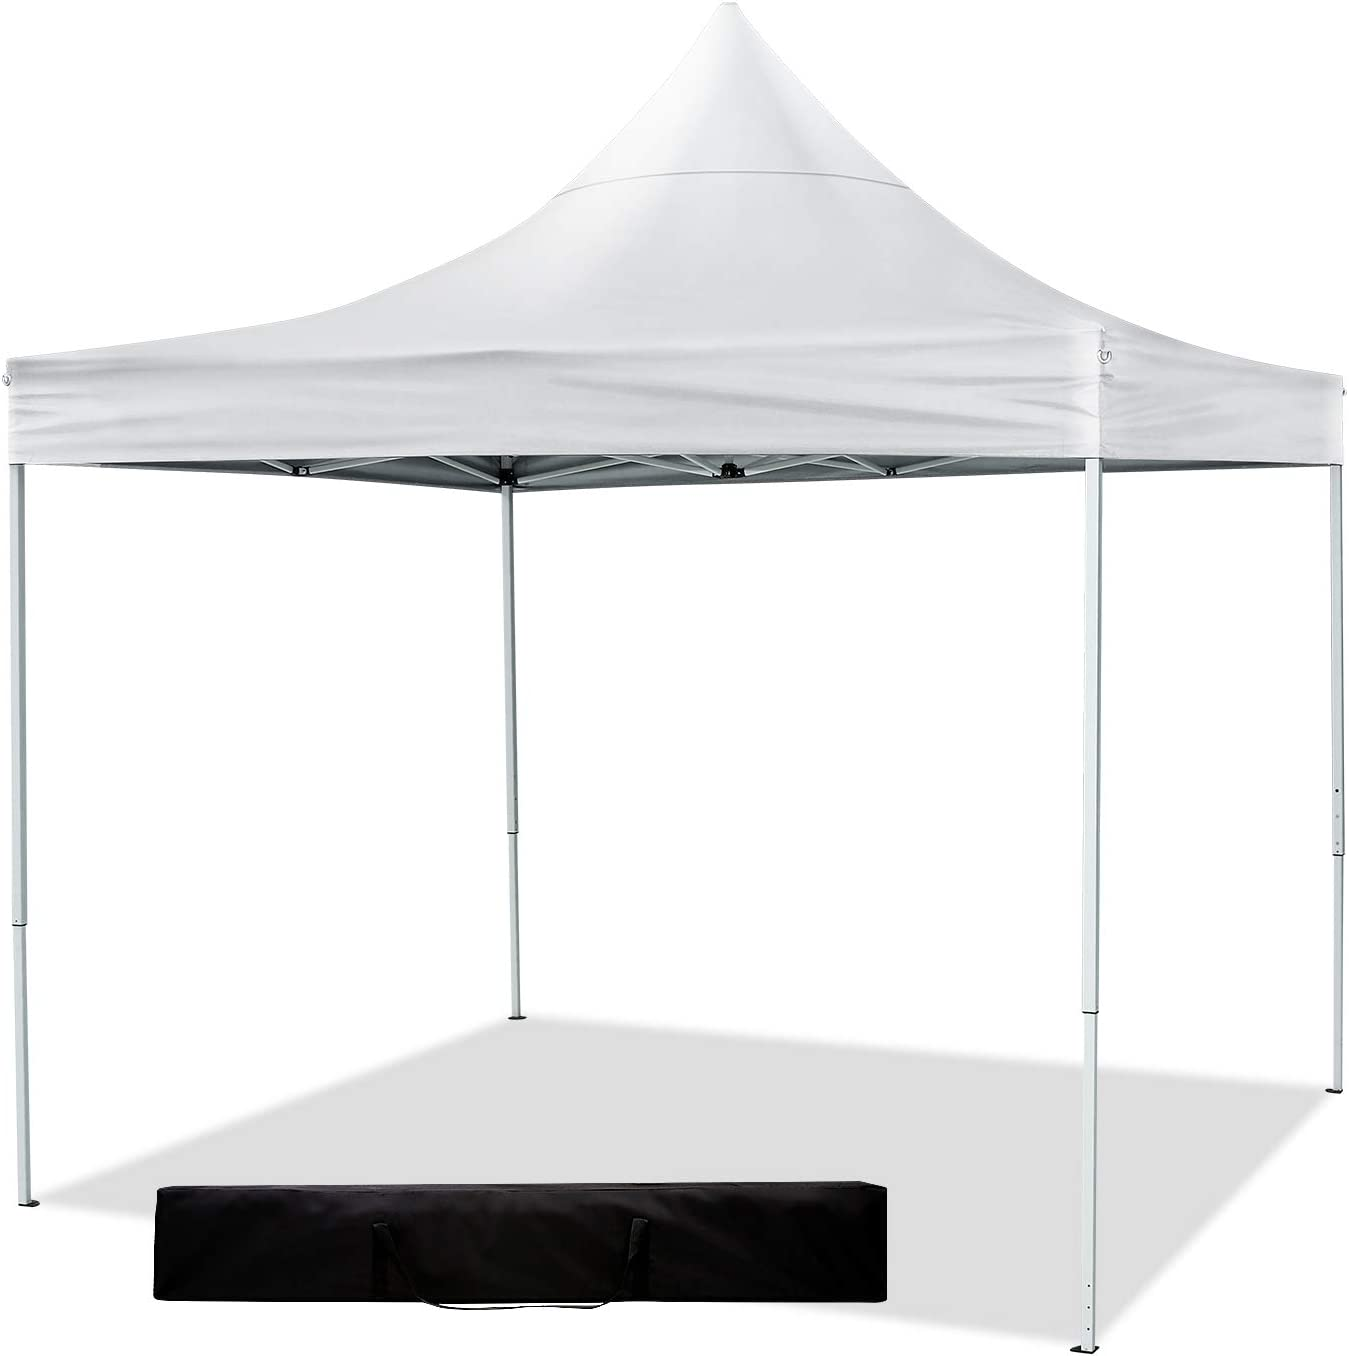 YUEBO Canopy Tent 10×10,Popup Waterproof Canopy Heavy Duty Party Tent for Wedding Camping Beach